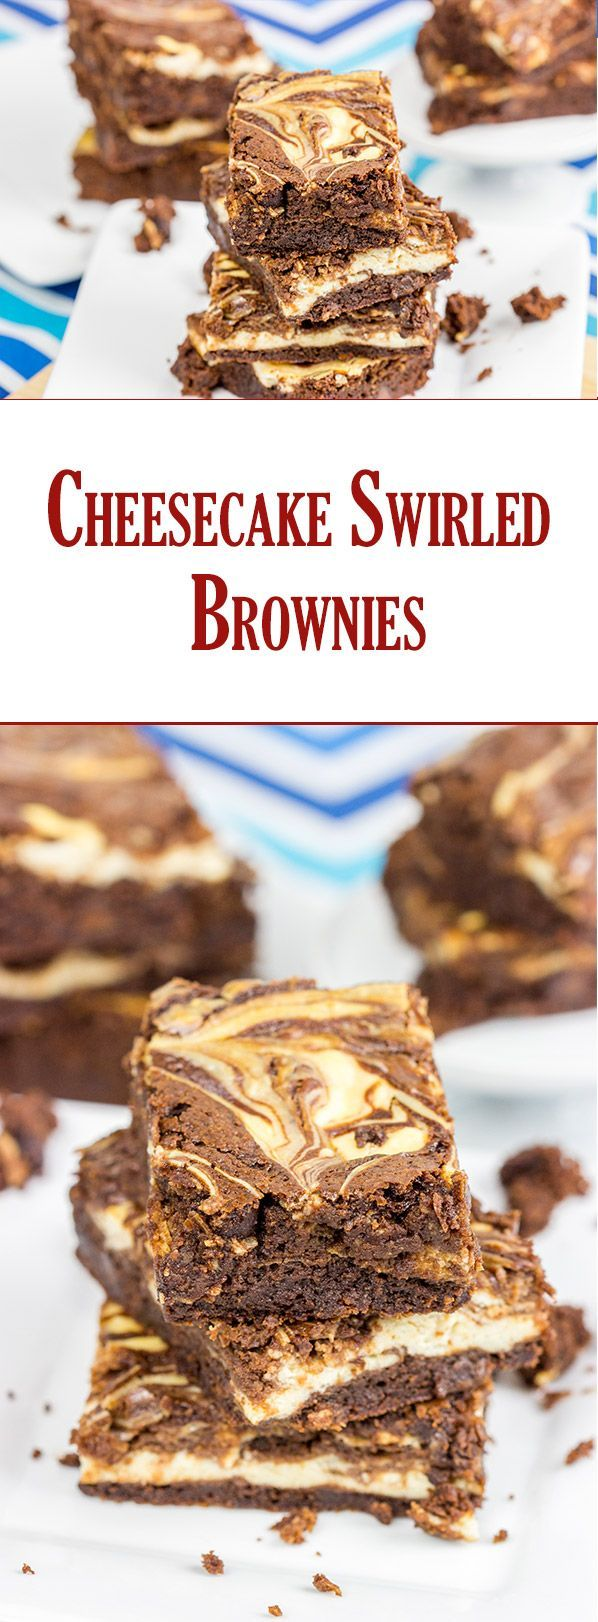 Brownies or cheesecake? Why pick one when you can have Cheesecake Swirled Brownies?